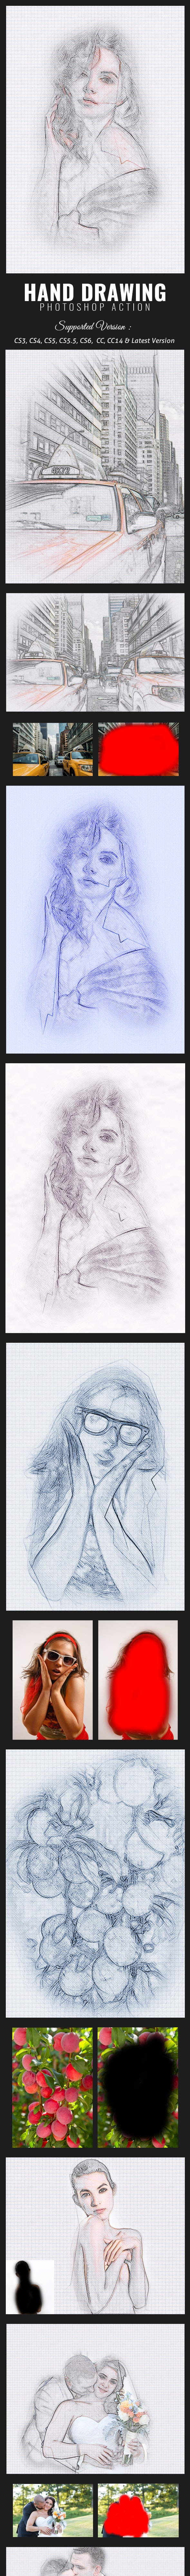 Hand Drawing Action - Photo Effects Actions